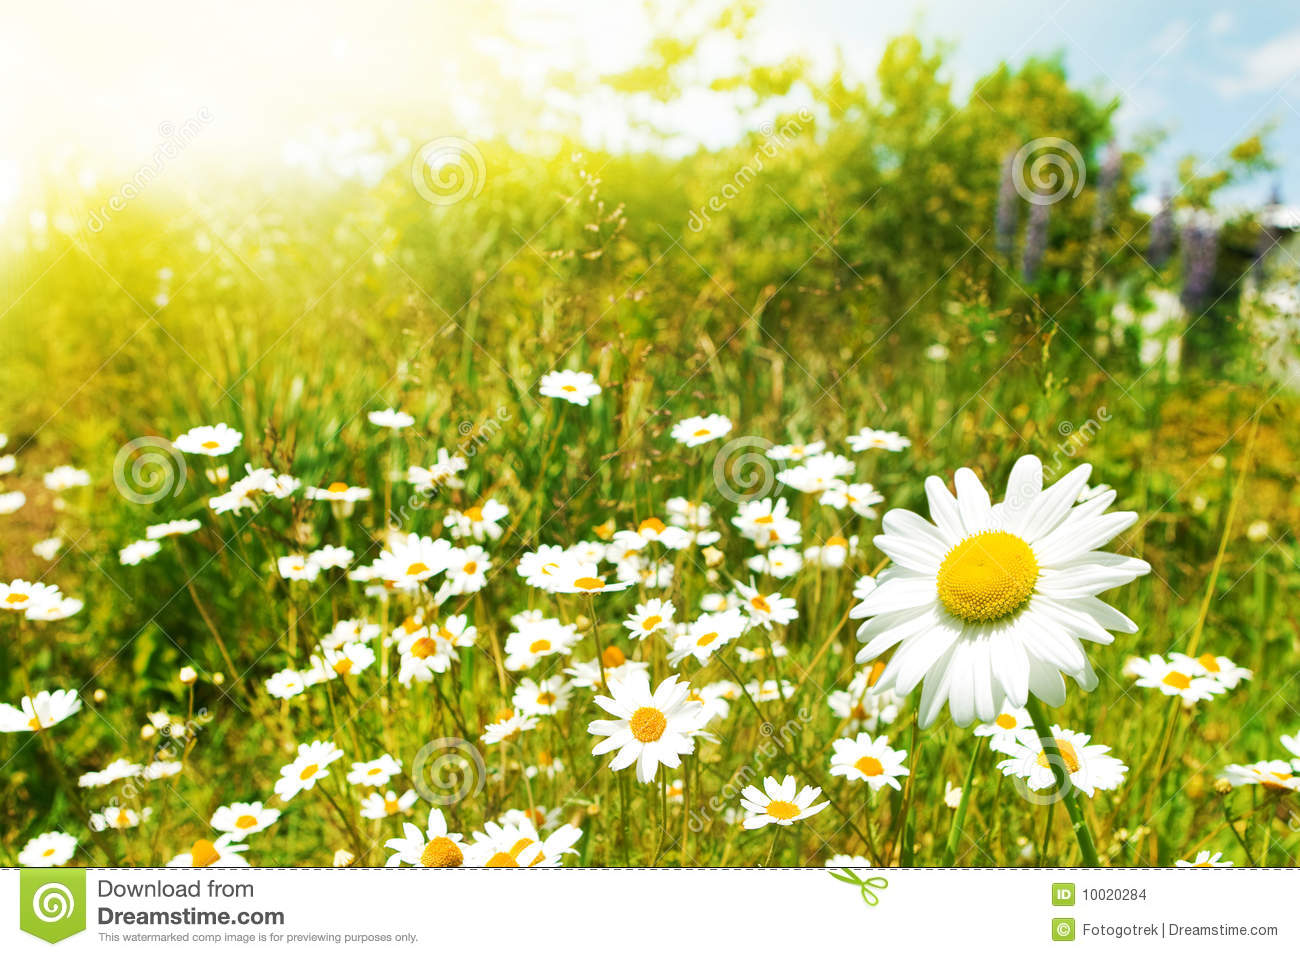 Field Of Daisies Stock Images - Image: 10020284 Field Of Daisies